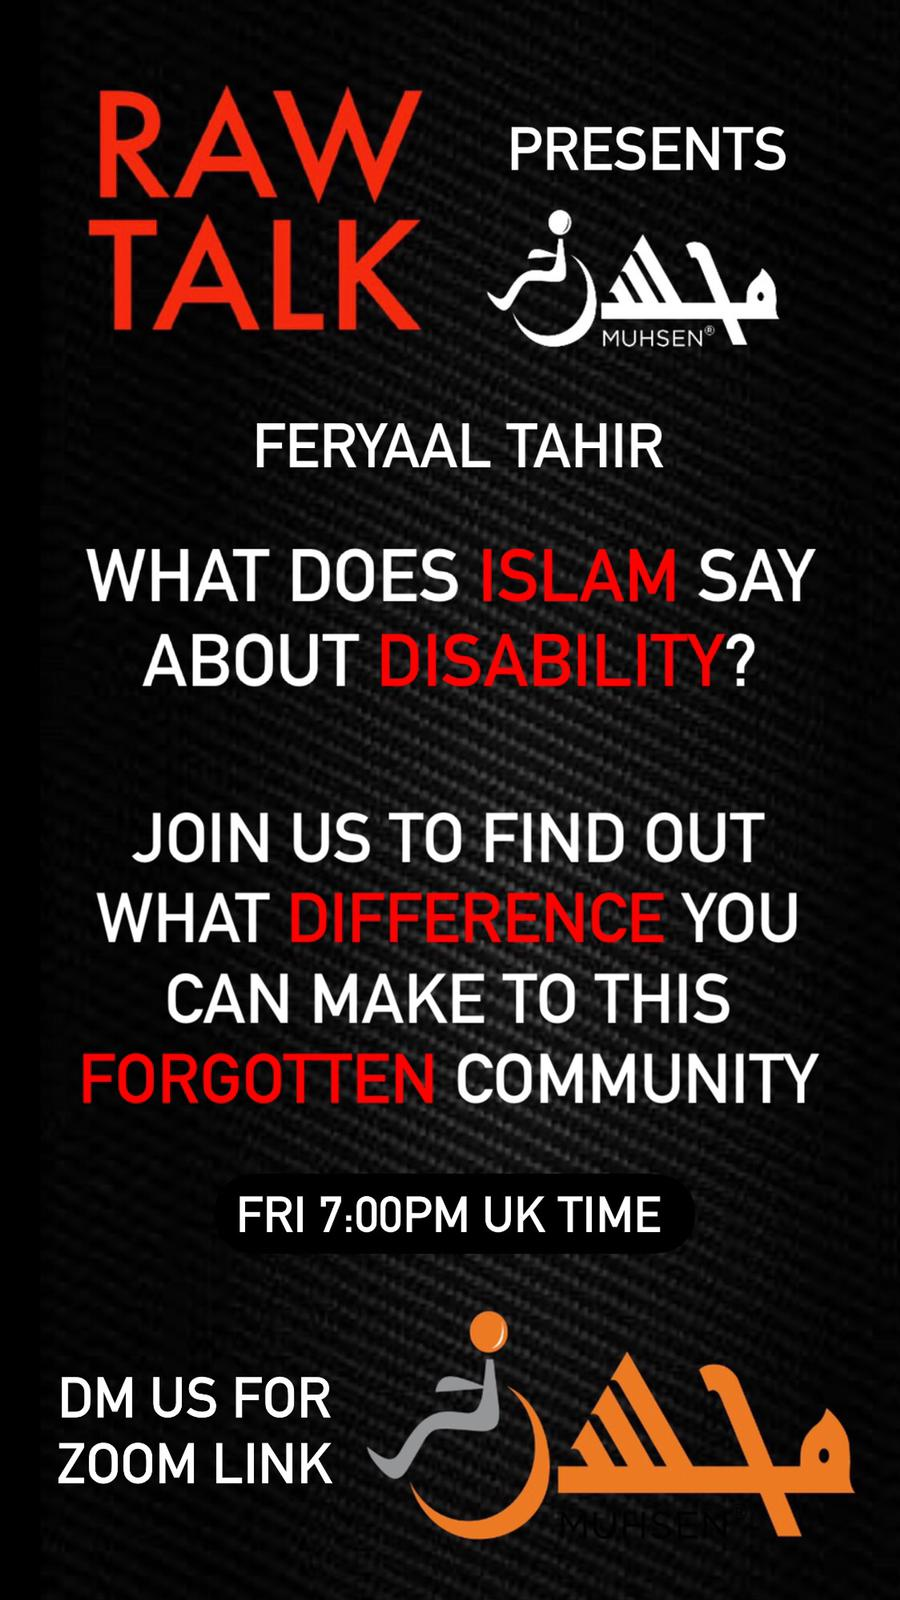 Black background. To the top left is red text that reads RAW TALK. To the top right is white text that reads PRESENTS. Beneath is a white muhsen logo. Beneath is text that reads Feryaal Tahir. What does Islam say about disability? Join us to find out what difference you can make to this forgotten community. Friday 7:00 PM UK time. At the bottom left is text that reads DM us for zoom link. At the bottom right is an orange muhsen logo.